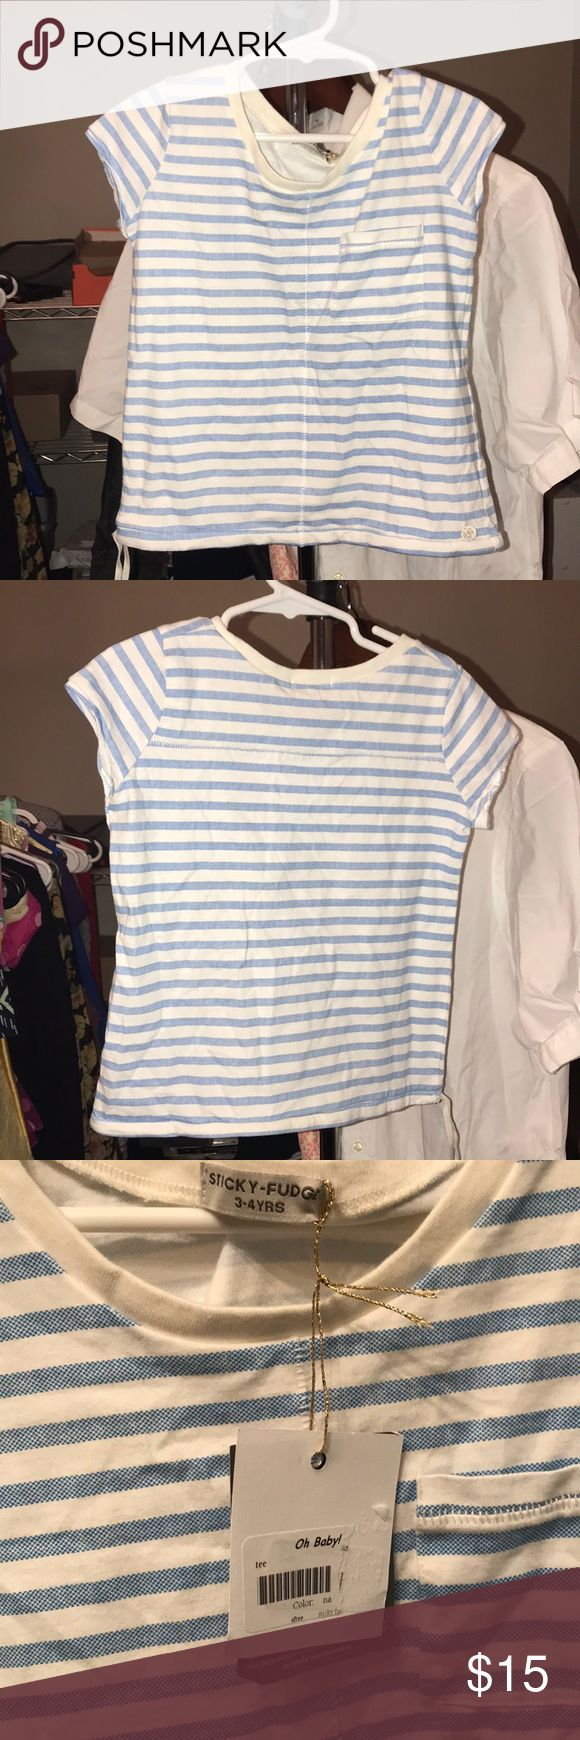 Sticky-Fudge Tailored Collection. Little Girls NWT- Blue and white stripes. Tailored Collection. Size 3-4years Sticky-Fudge Tailored Collection Tops Tees - Short Sleeve